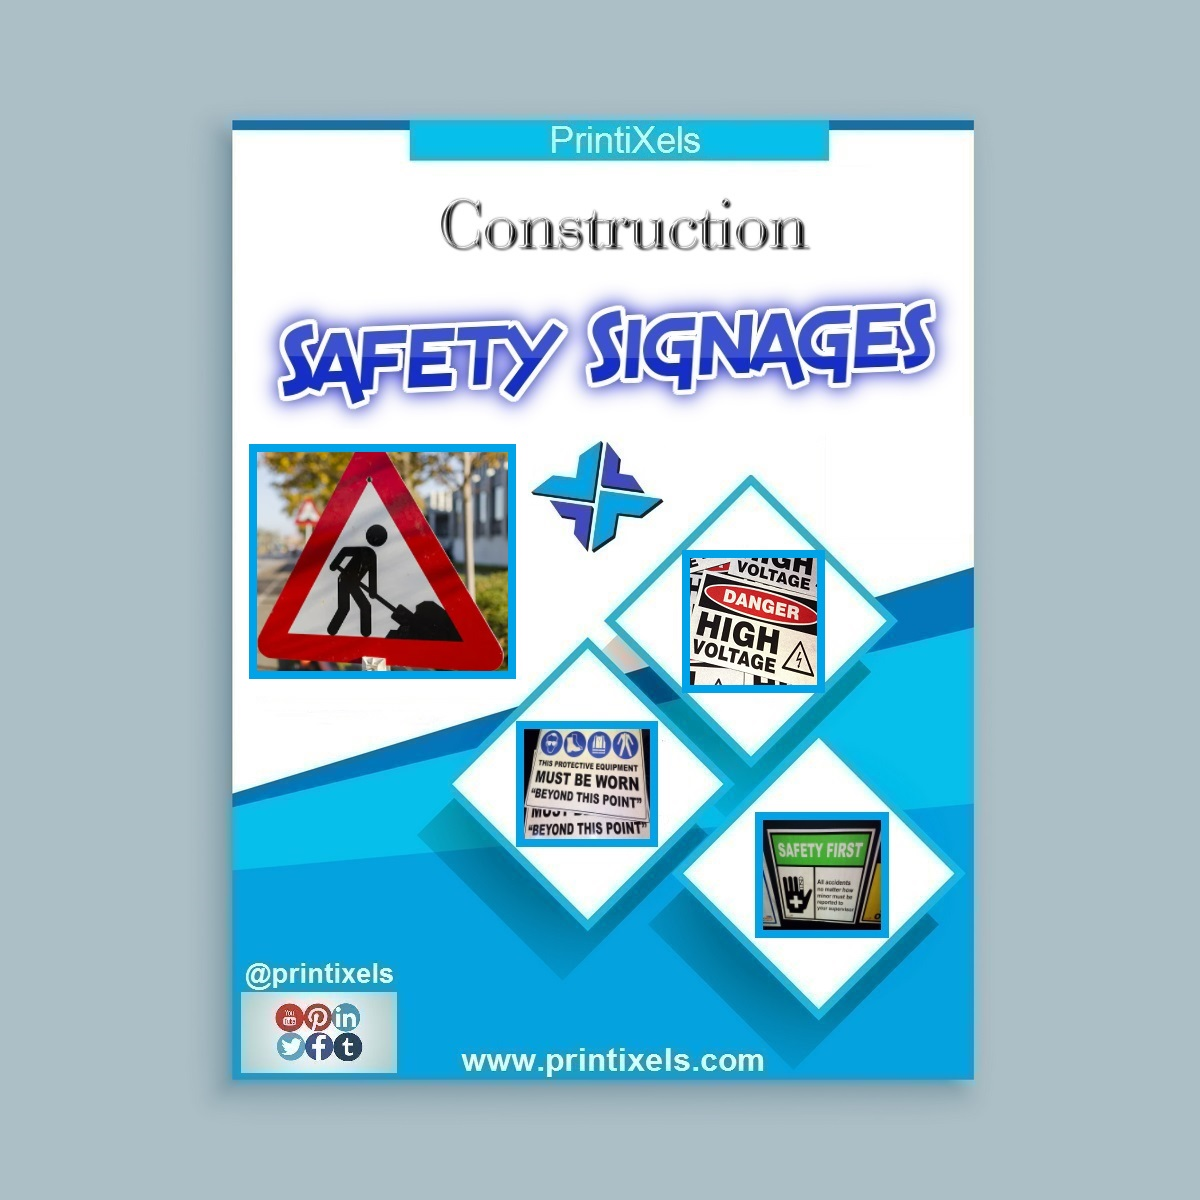 Construction Safety Signages